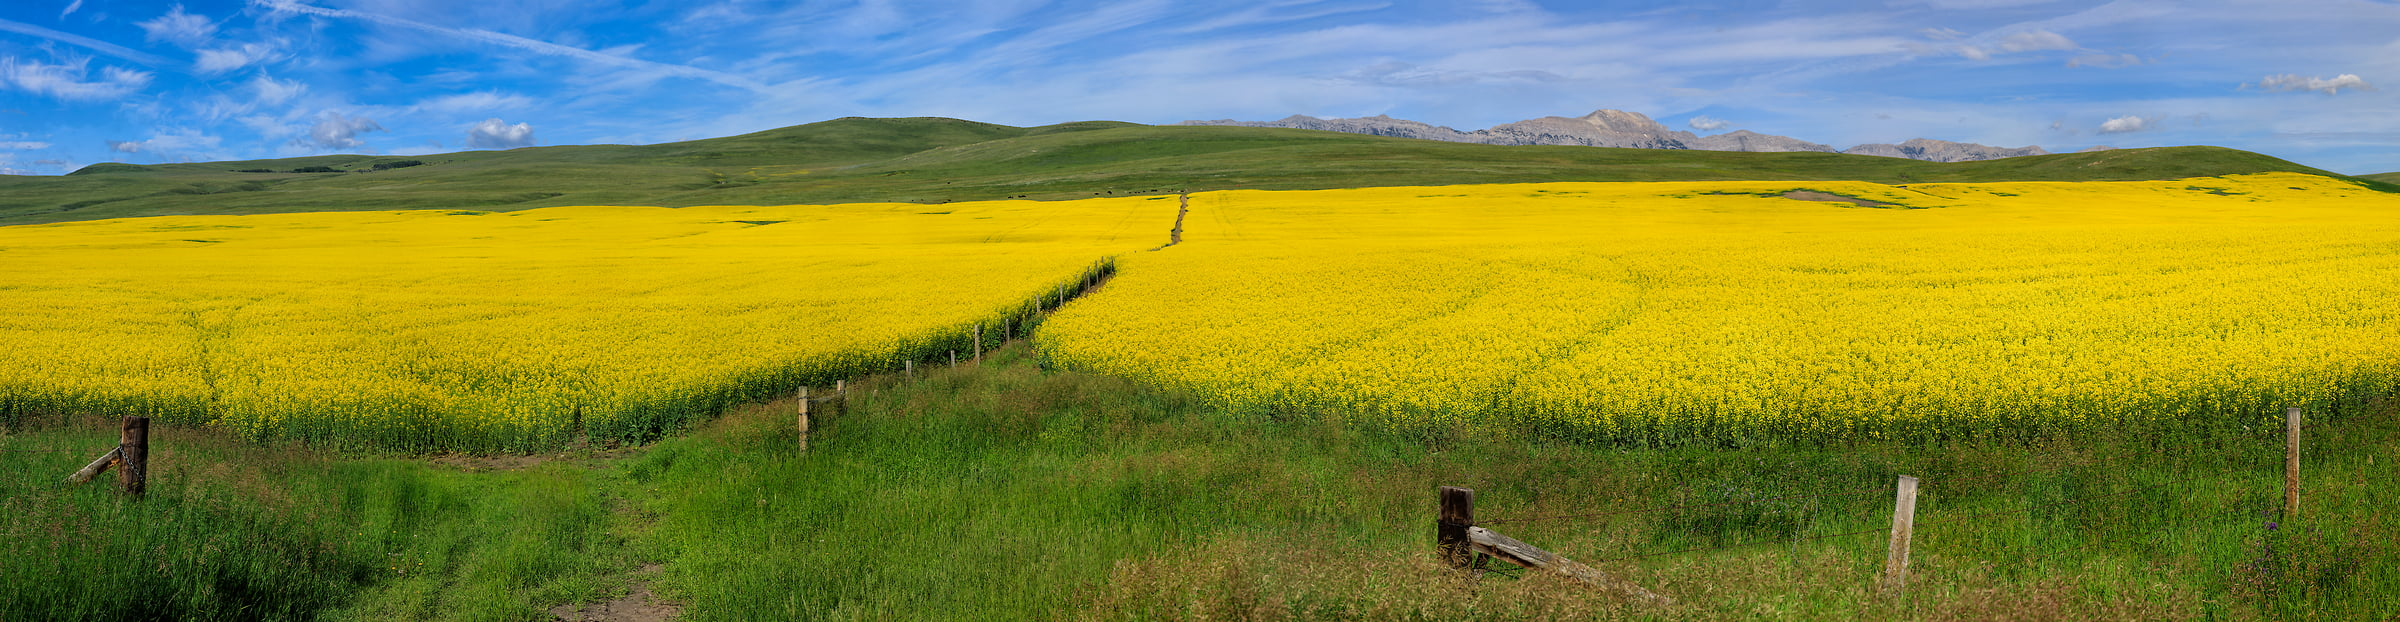 1,107 megapixels! A very high resolution, large-format VAST photo print of a canola field; landscape photograph created by Scott Dimond in Cowboy Trial, Alberta, Canada